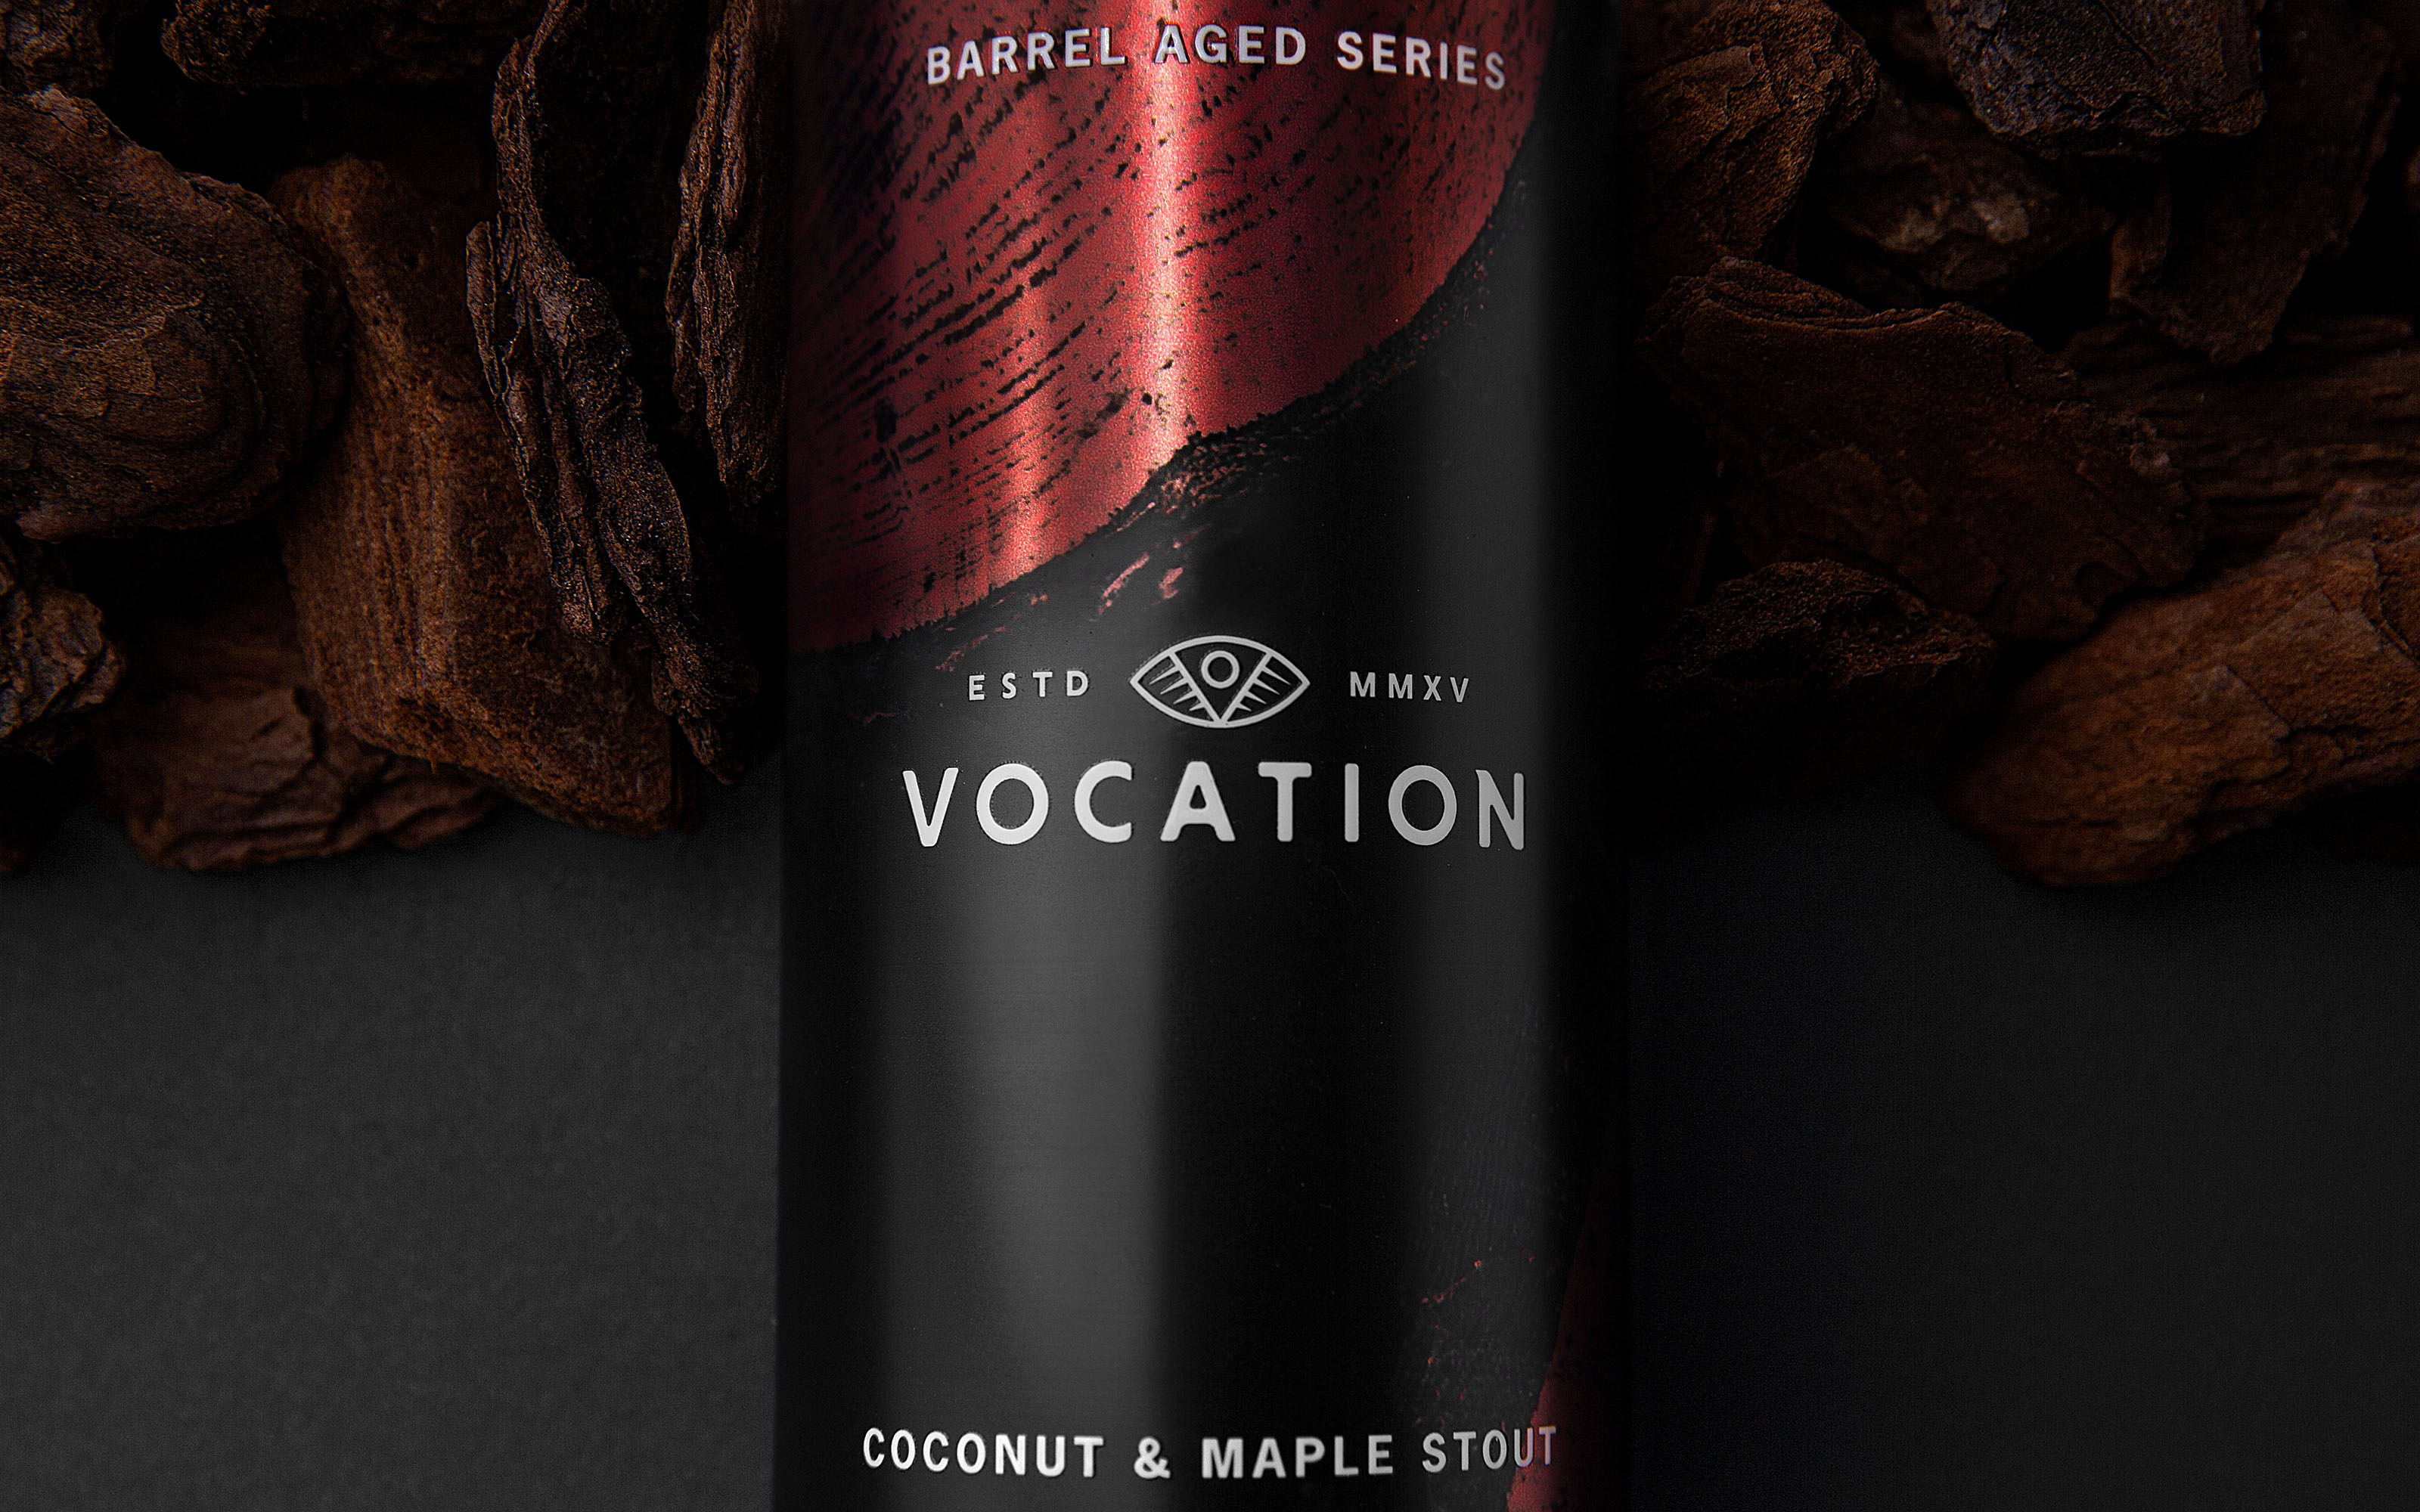 Robot Food Design Vocation Brewery's Barrel Aged Series